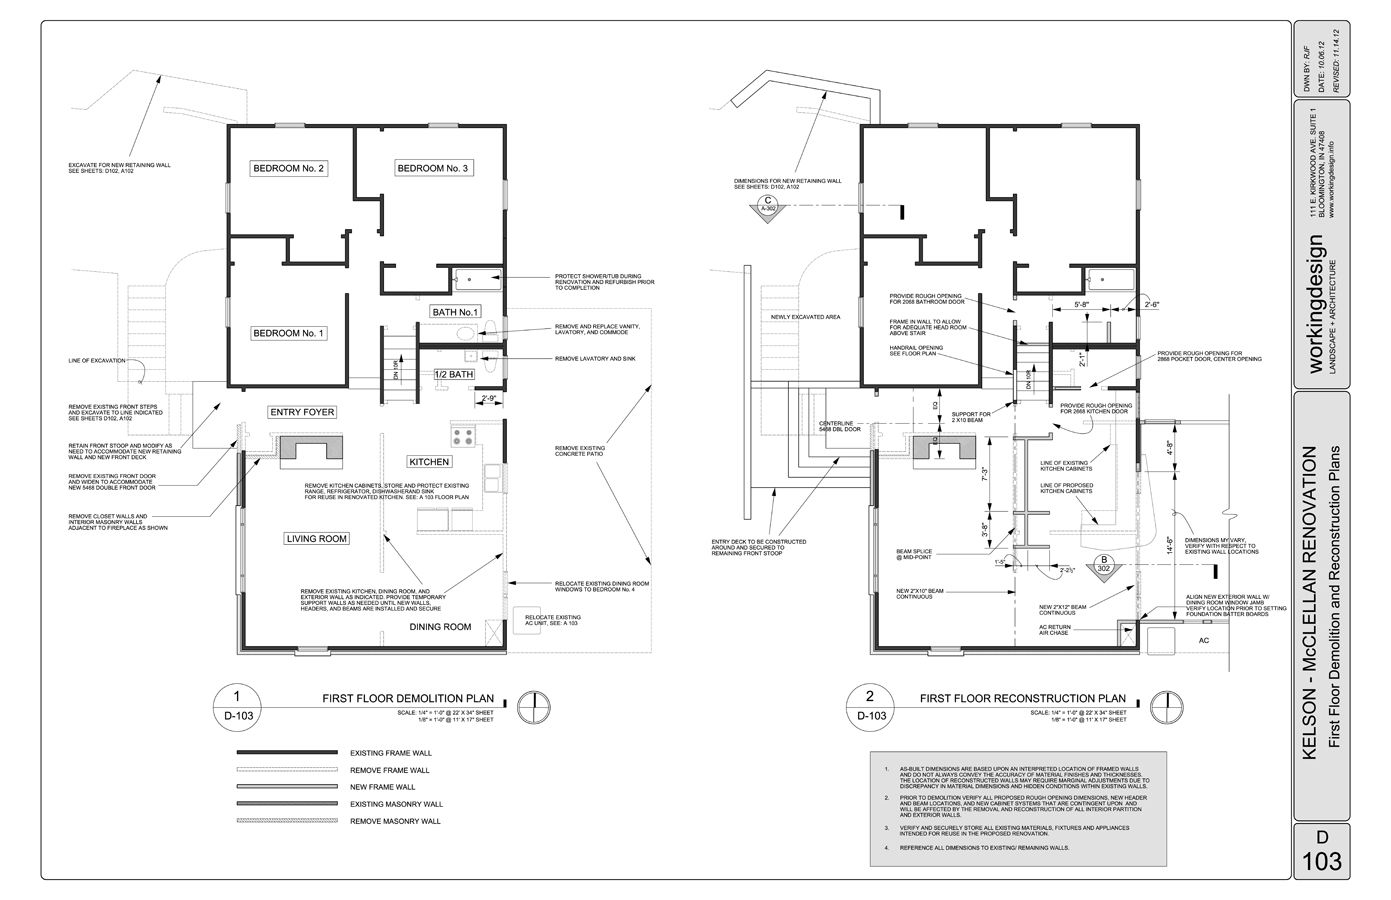 Building Demolition Drawing : Demo plan building science details pinterest